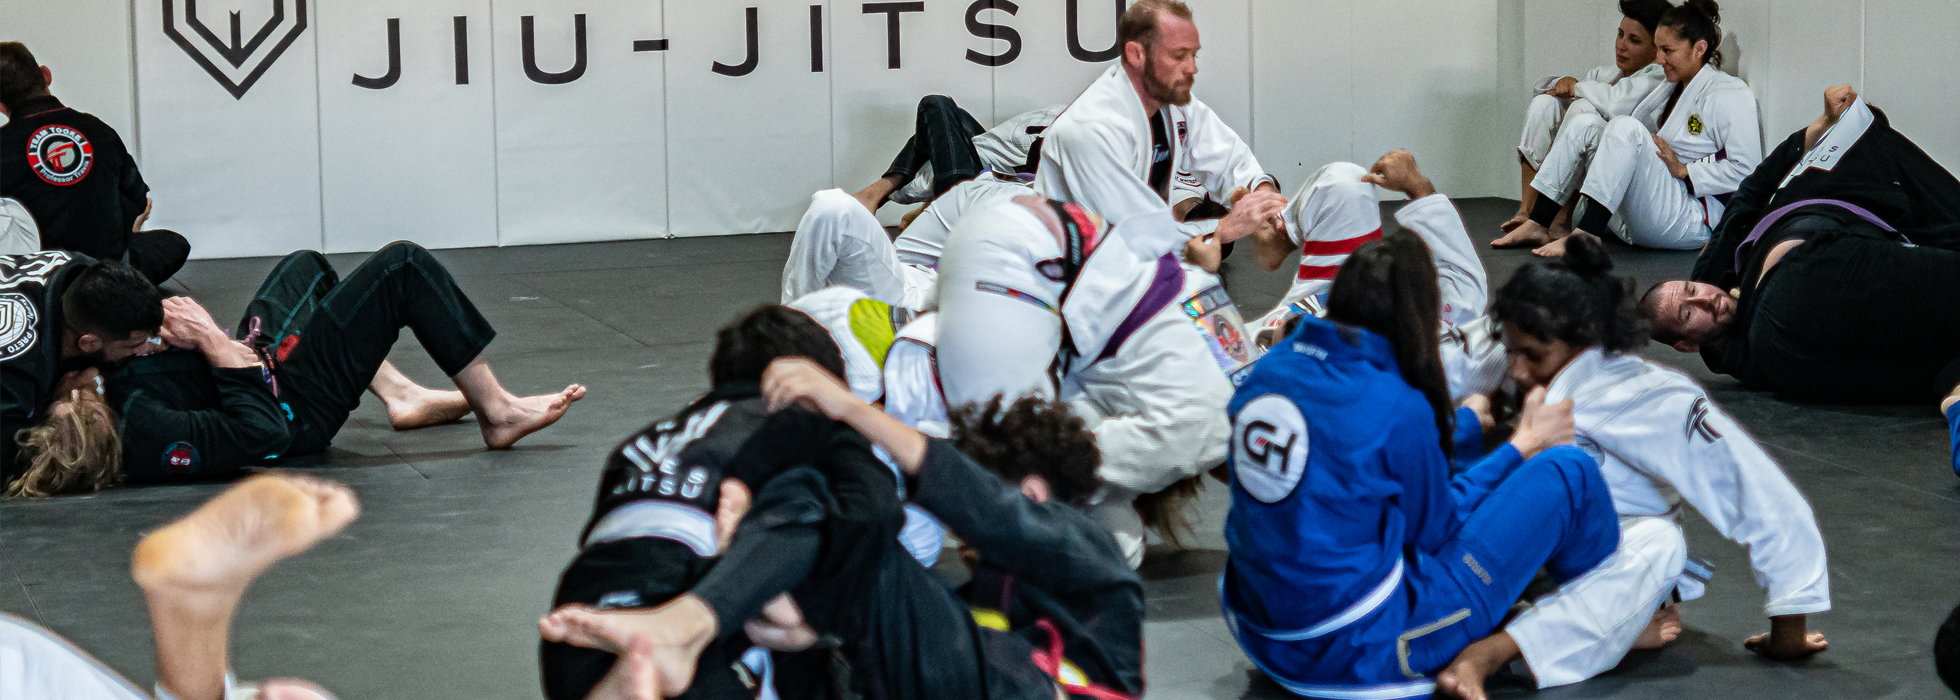 Adult Brazilian Jiu Jitsu Classes in Spring TX, Adult Brazilian Jiu Jitsu Classes near The Woodlands TX, Adult Brazilian Jiu Jitsu Classes near Klein, Adult Brazilian Jiu Jitsu Classes near Tomball TX